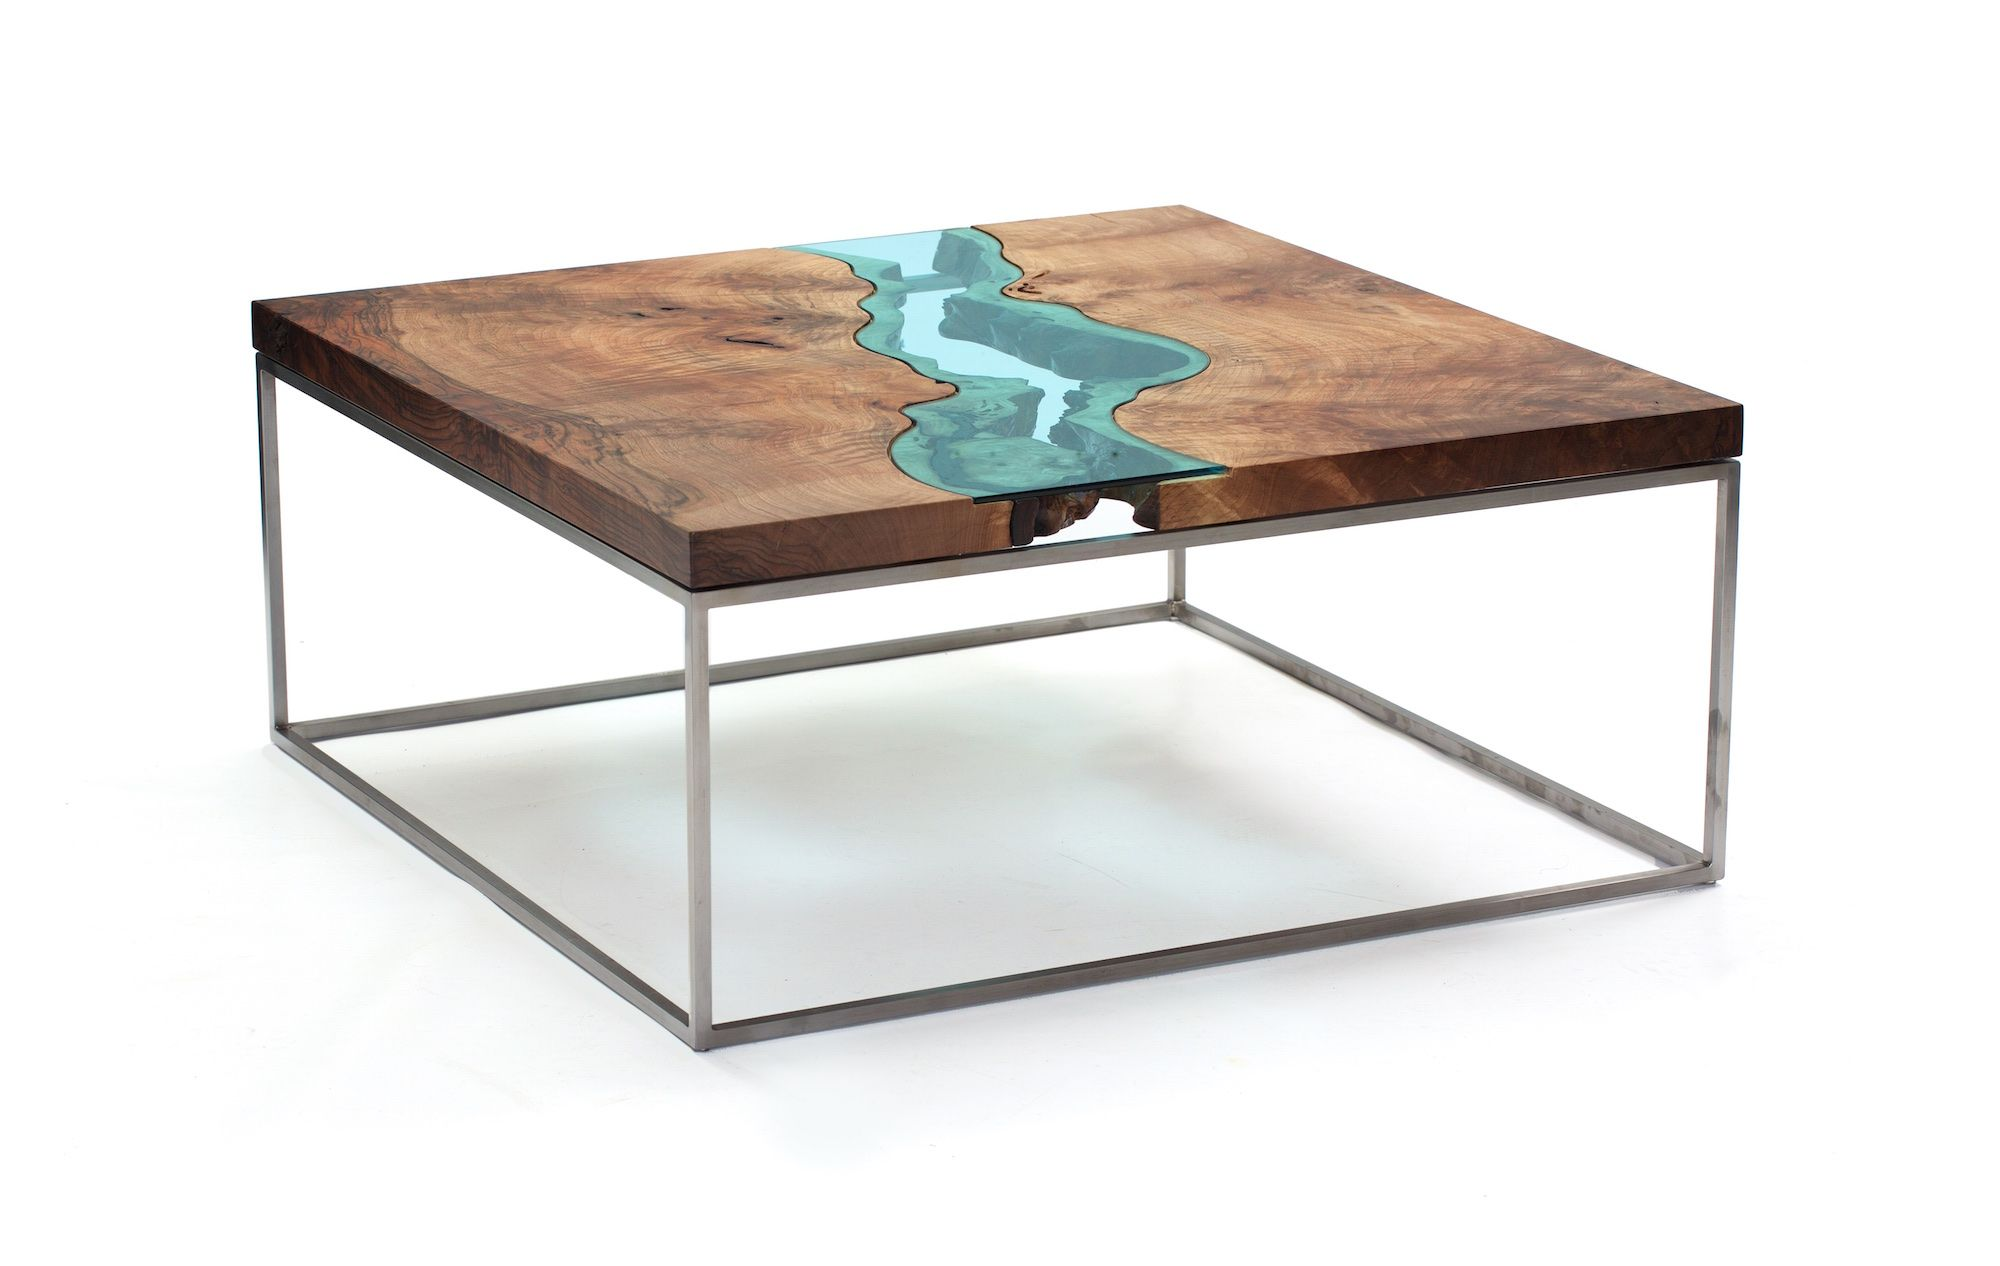 Square Walnut River Coffee Table 1 Northwestern Washington based